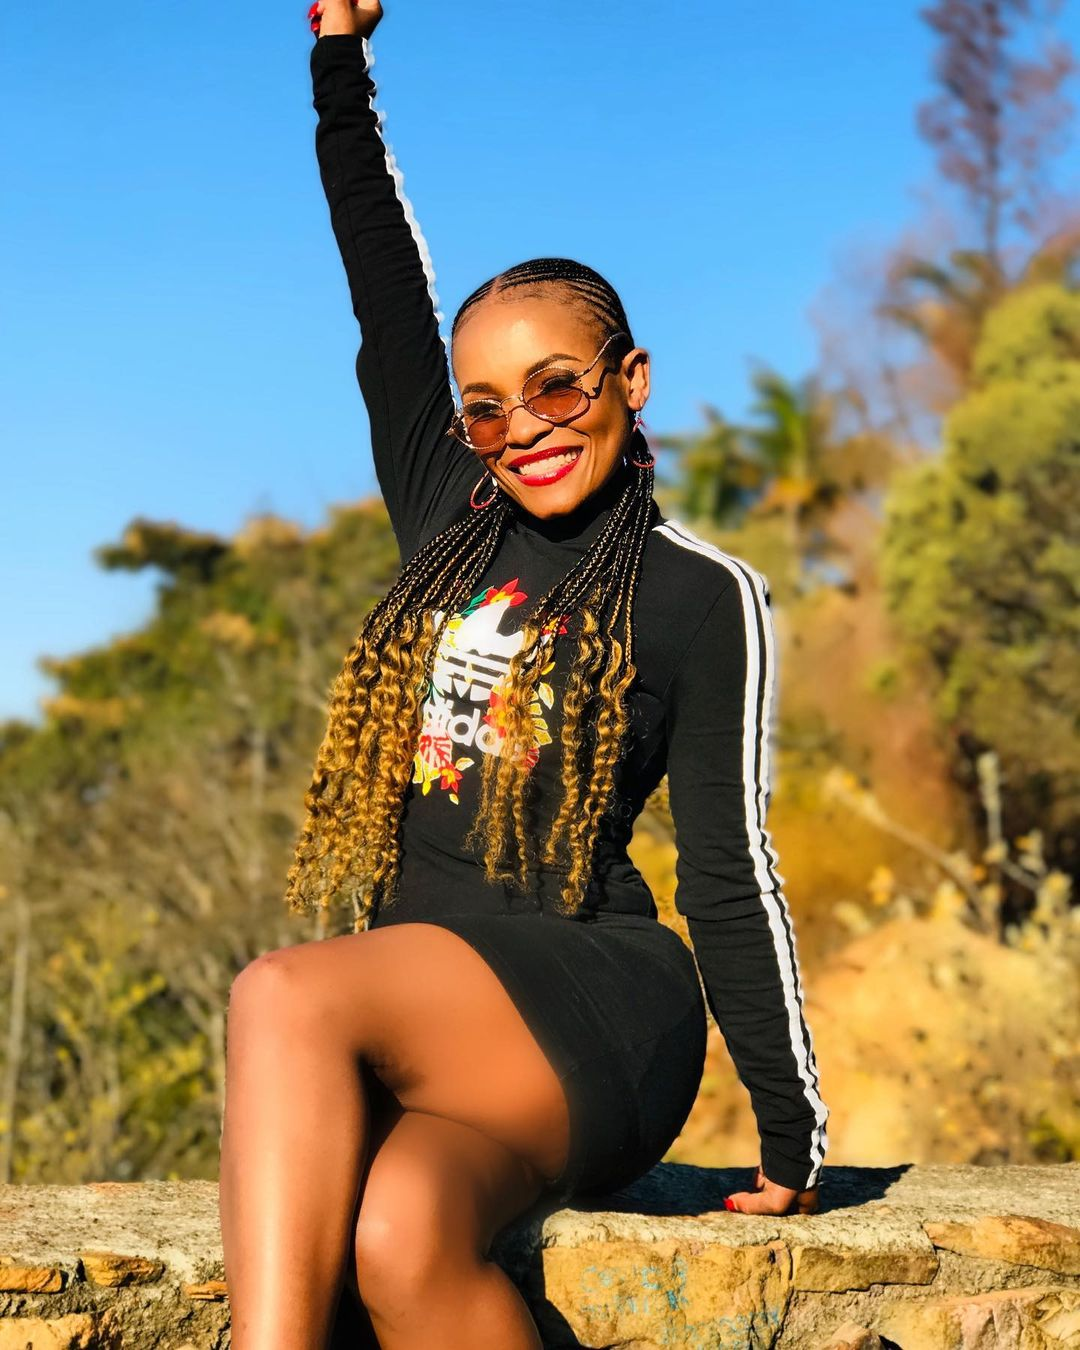 There is no need to prove myself to directors and producers – Thandy Matlaila